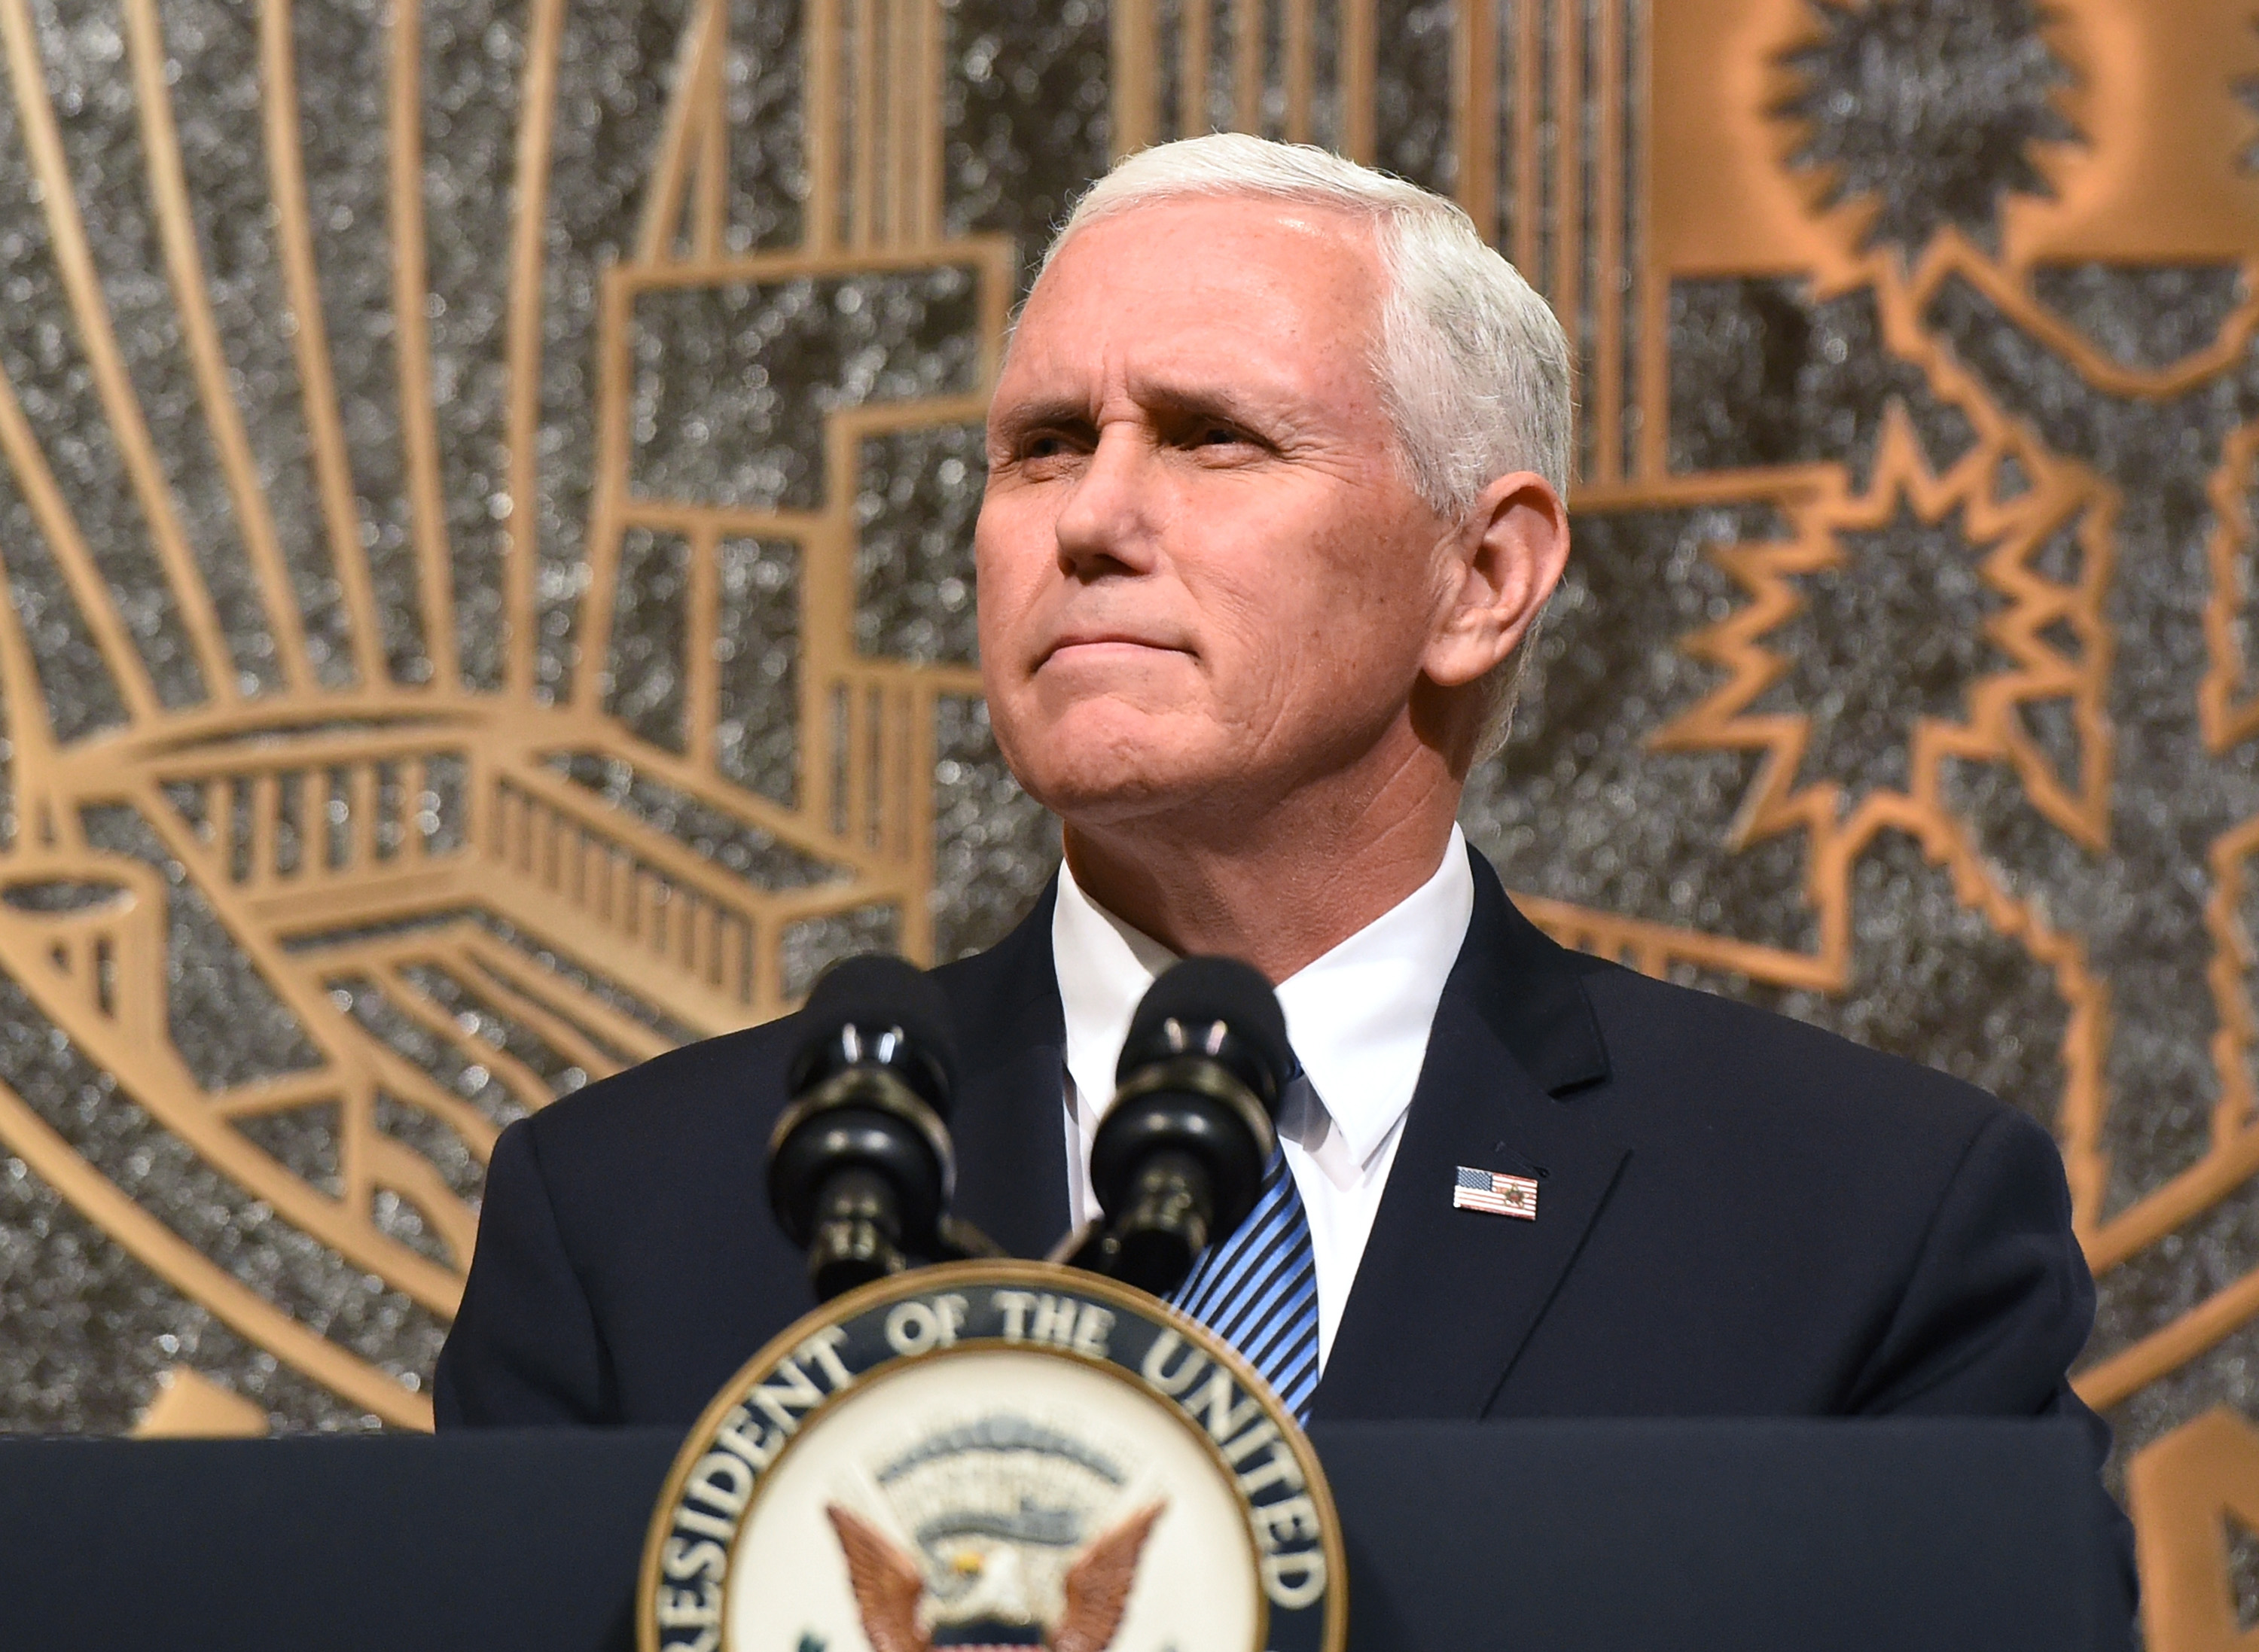 Vice President Pence leaves National Football League game after players kneel